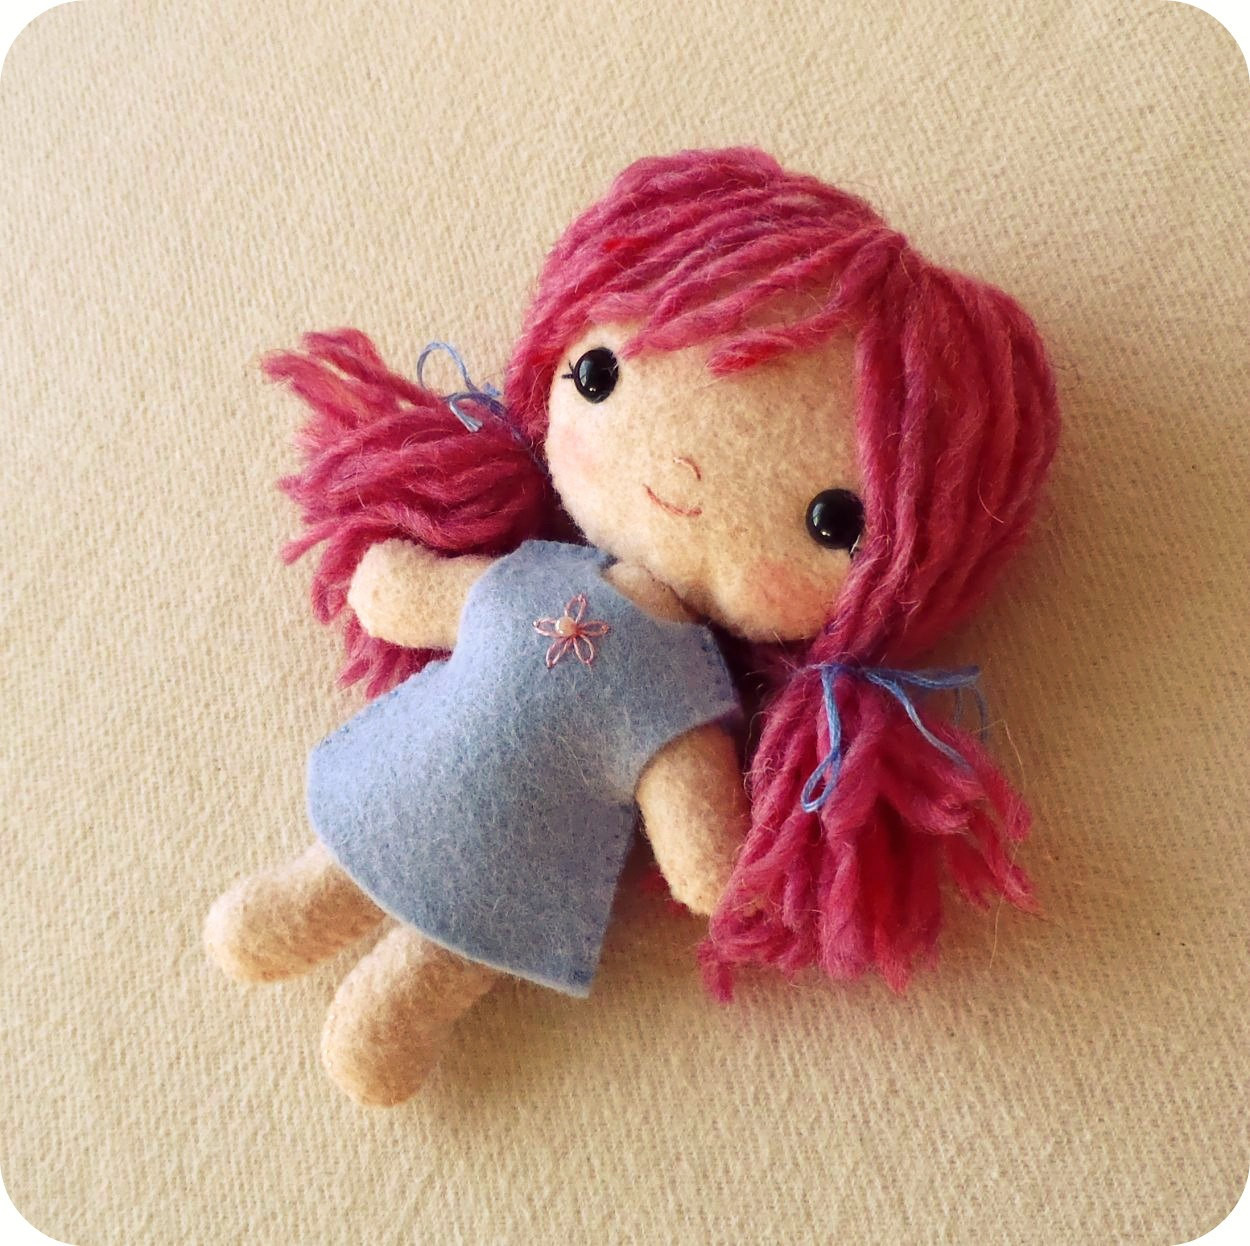 Doll Patterns Inspirational Doll Pdf Pattern Doll Pattern Plush Doll Easy Pattern Of Doll Patterns Best Of Rag Doll Patterns